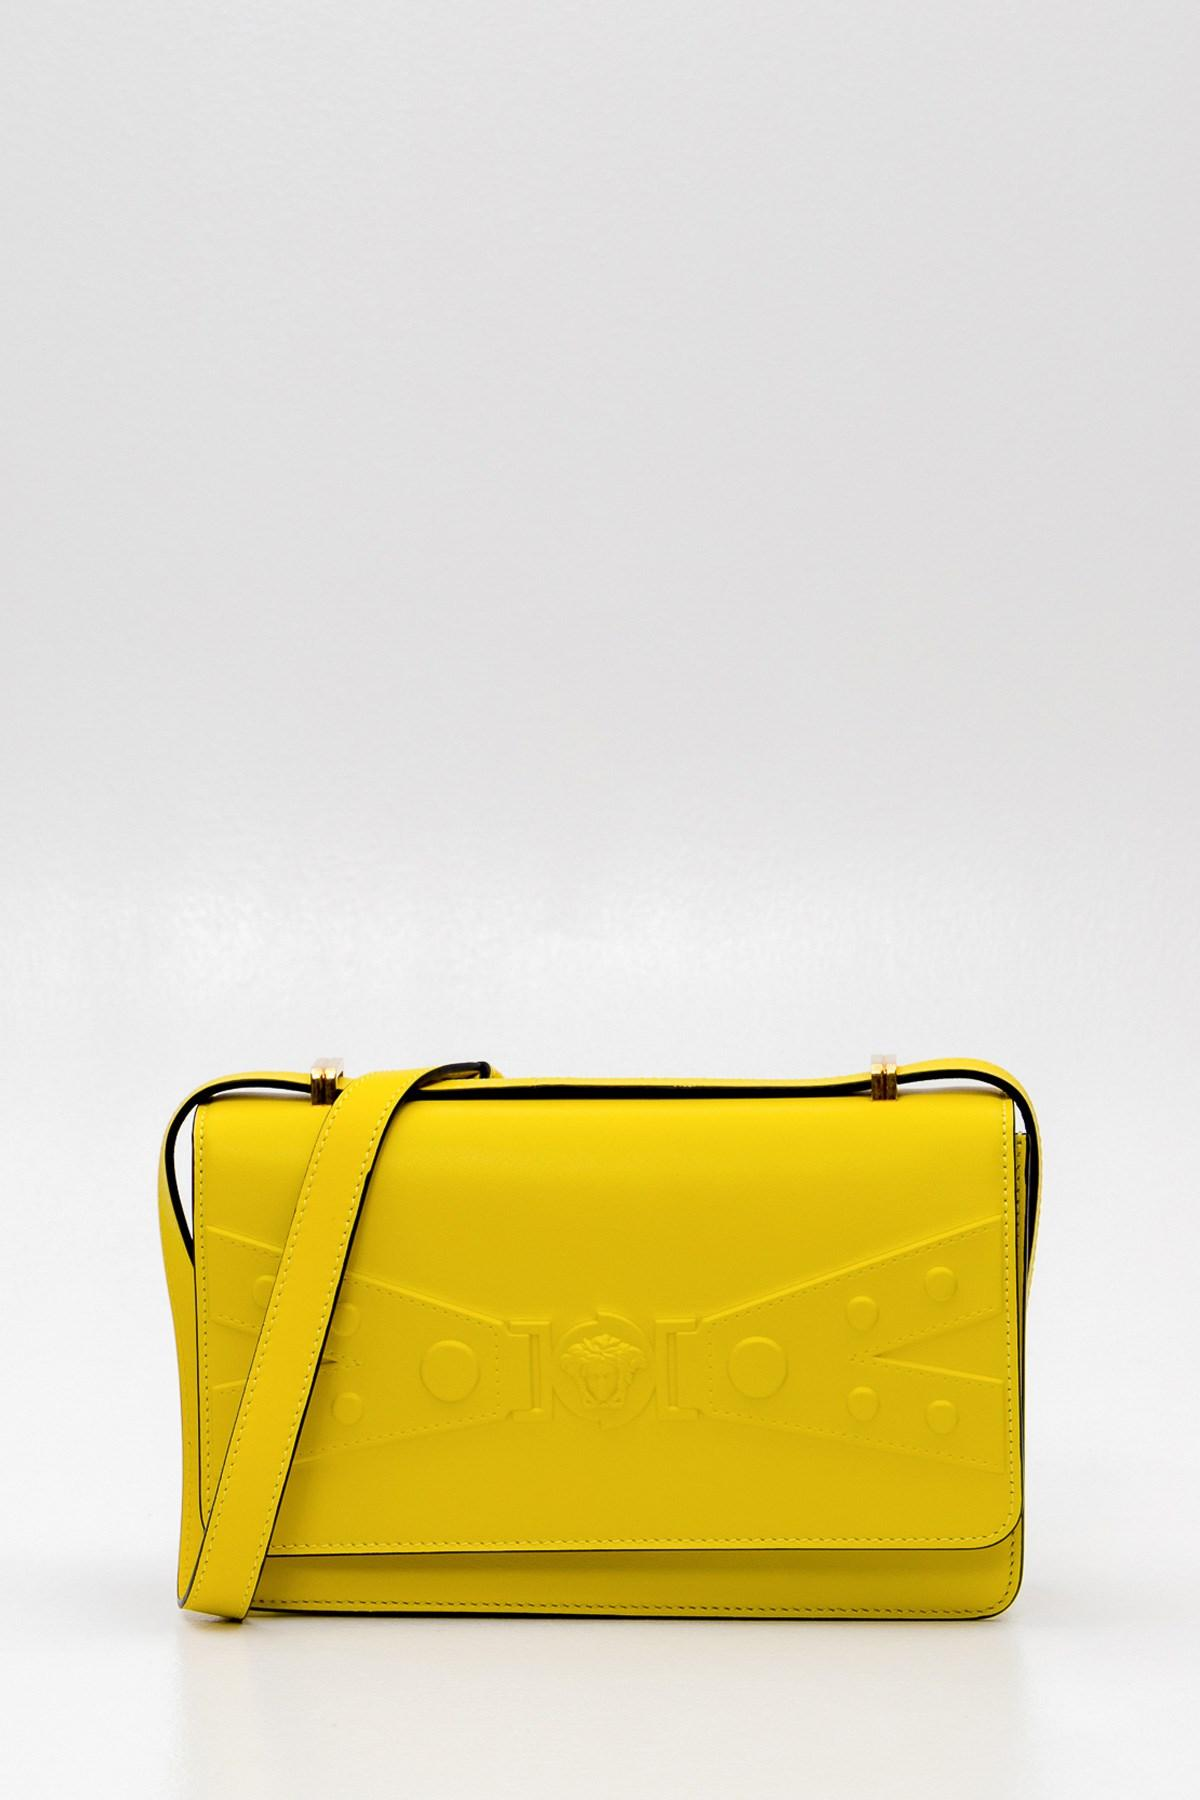 415a48e363 Versace Tribute X Shoulder Bag in Yellow - Lyst